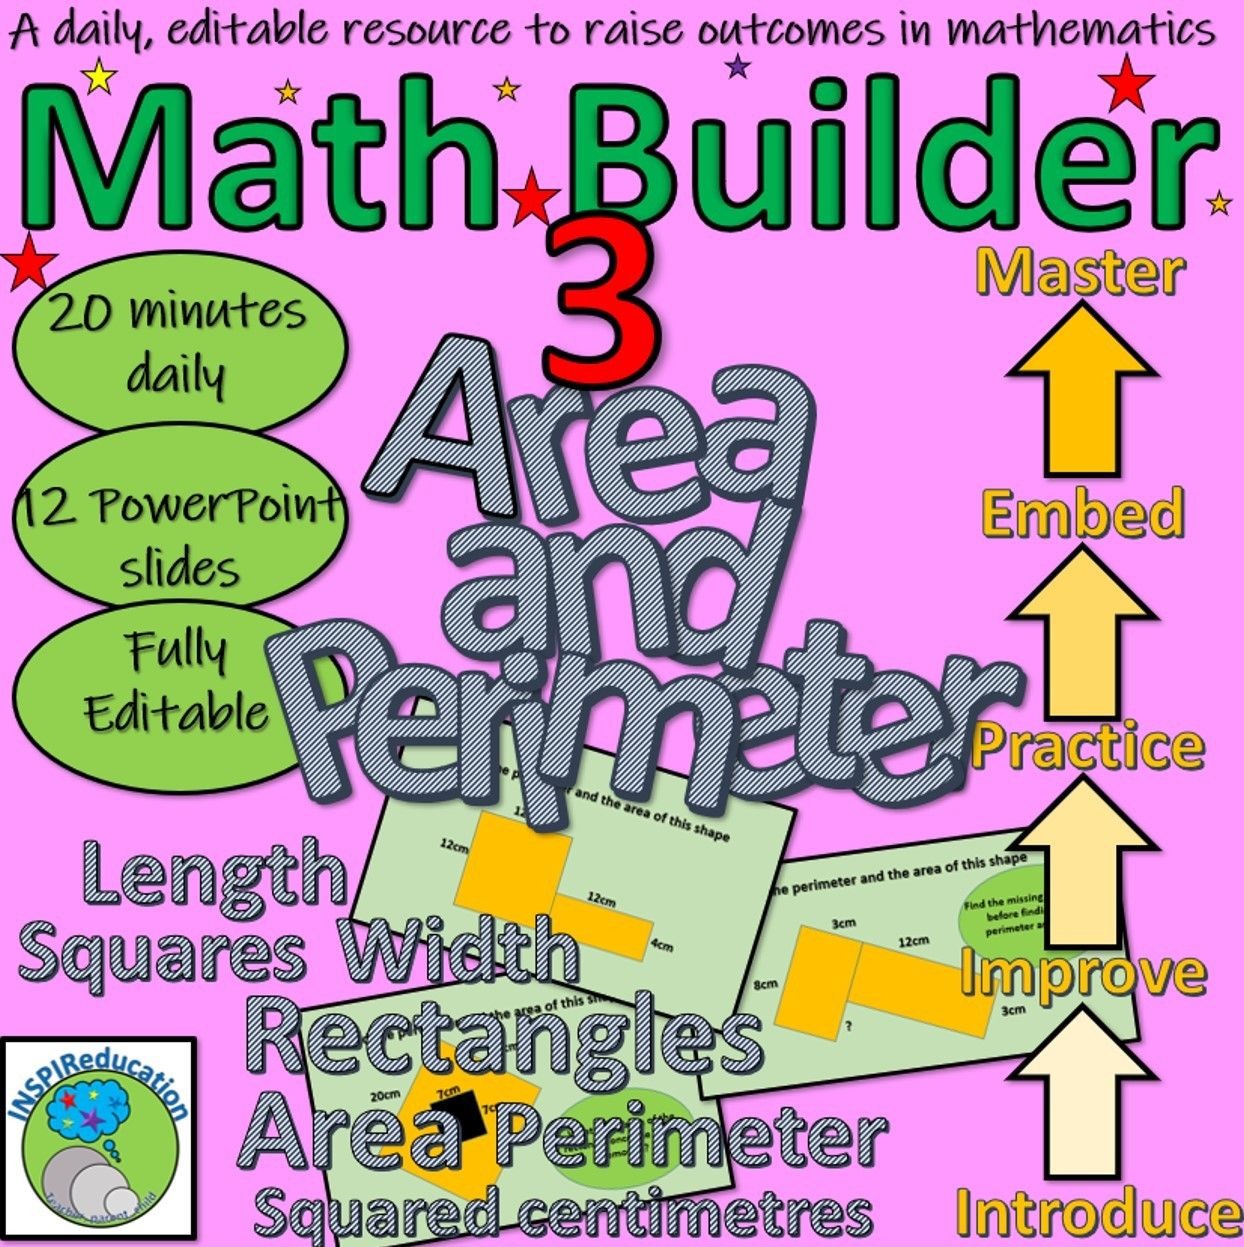 Math Builder 3 Daily Math Quiz To Build And Embed Math